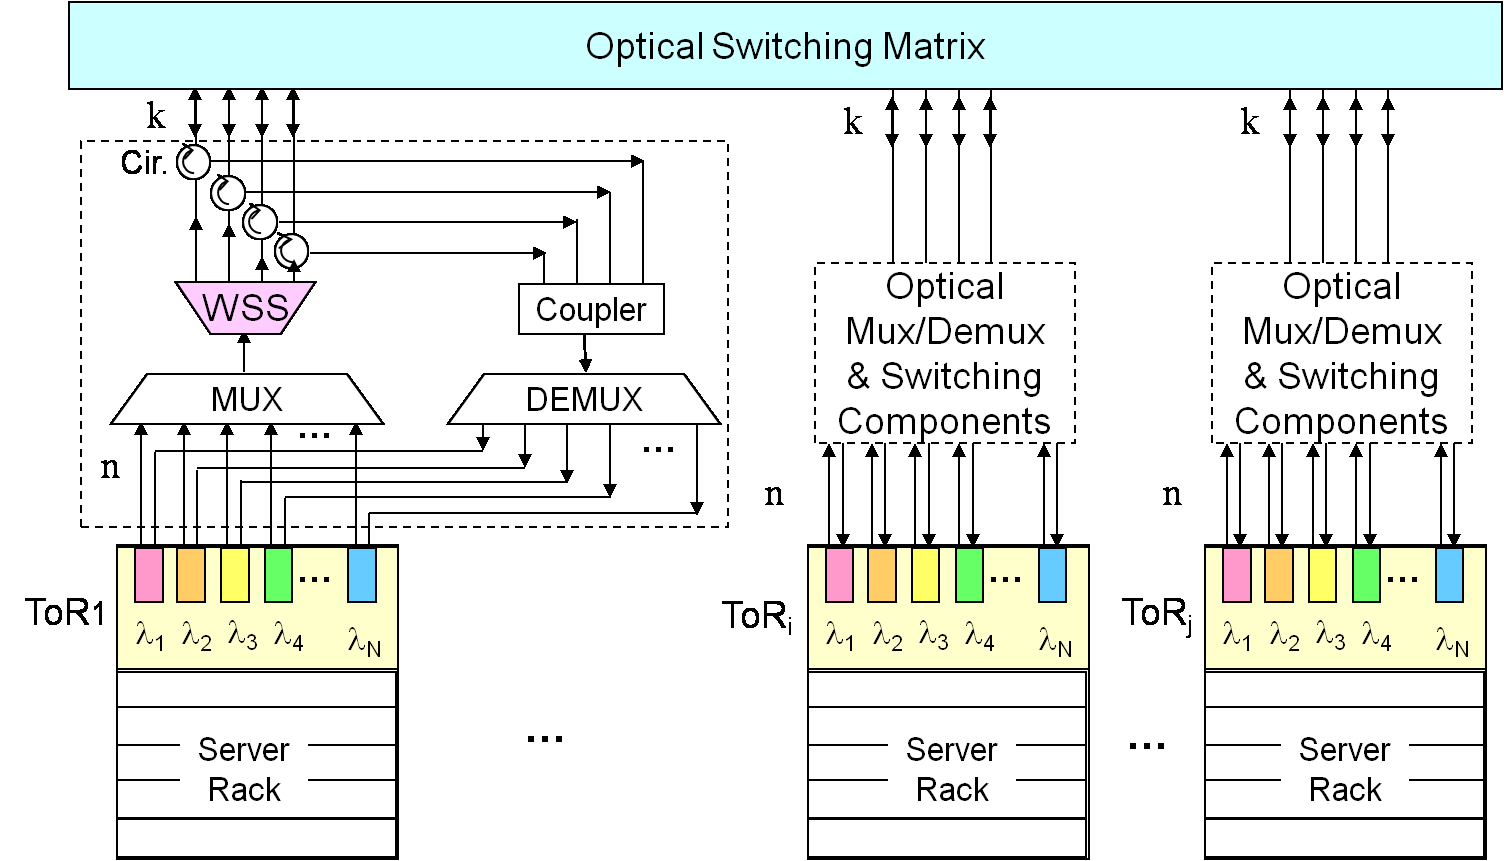 its port count, in the ToR graph. The configuration of the MEMS determines which set of ToRs are connected; and OSA must ensure that the ToR graph is connected when configuring the MEMS.